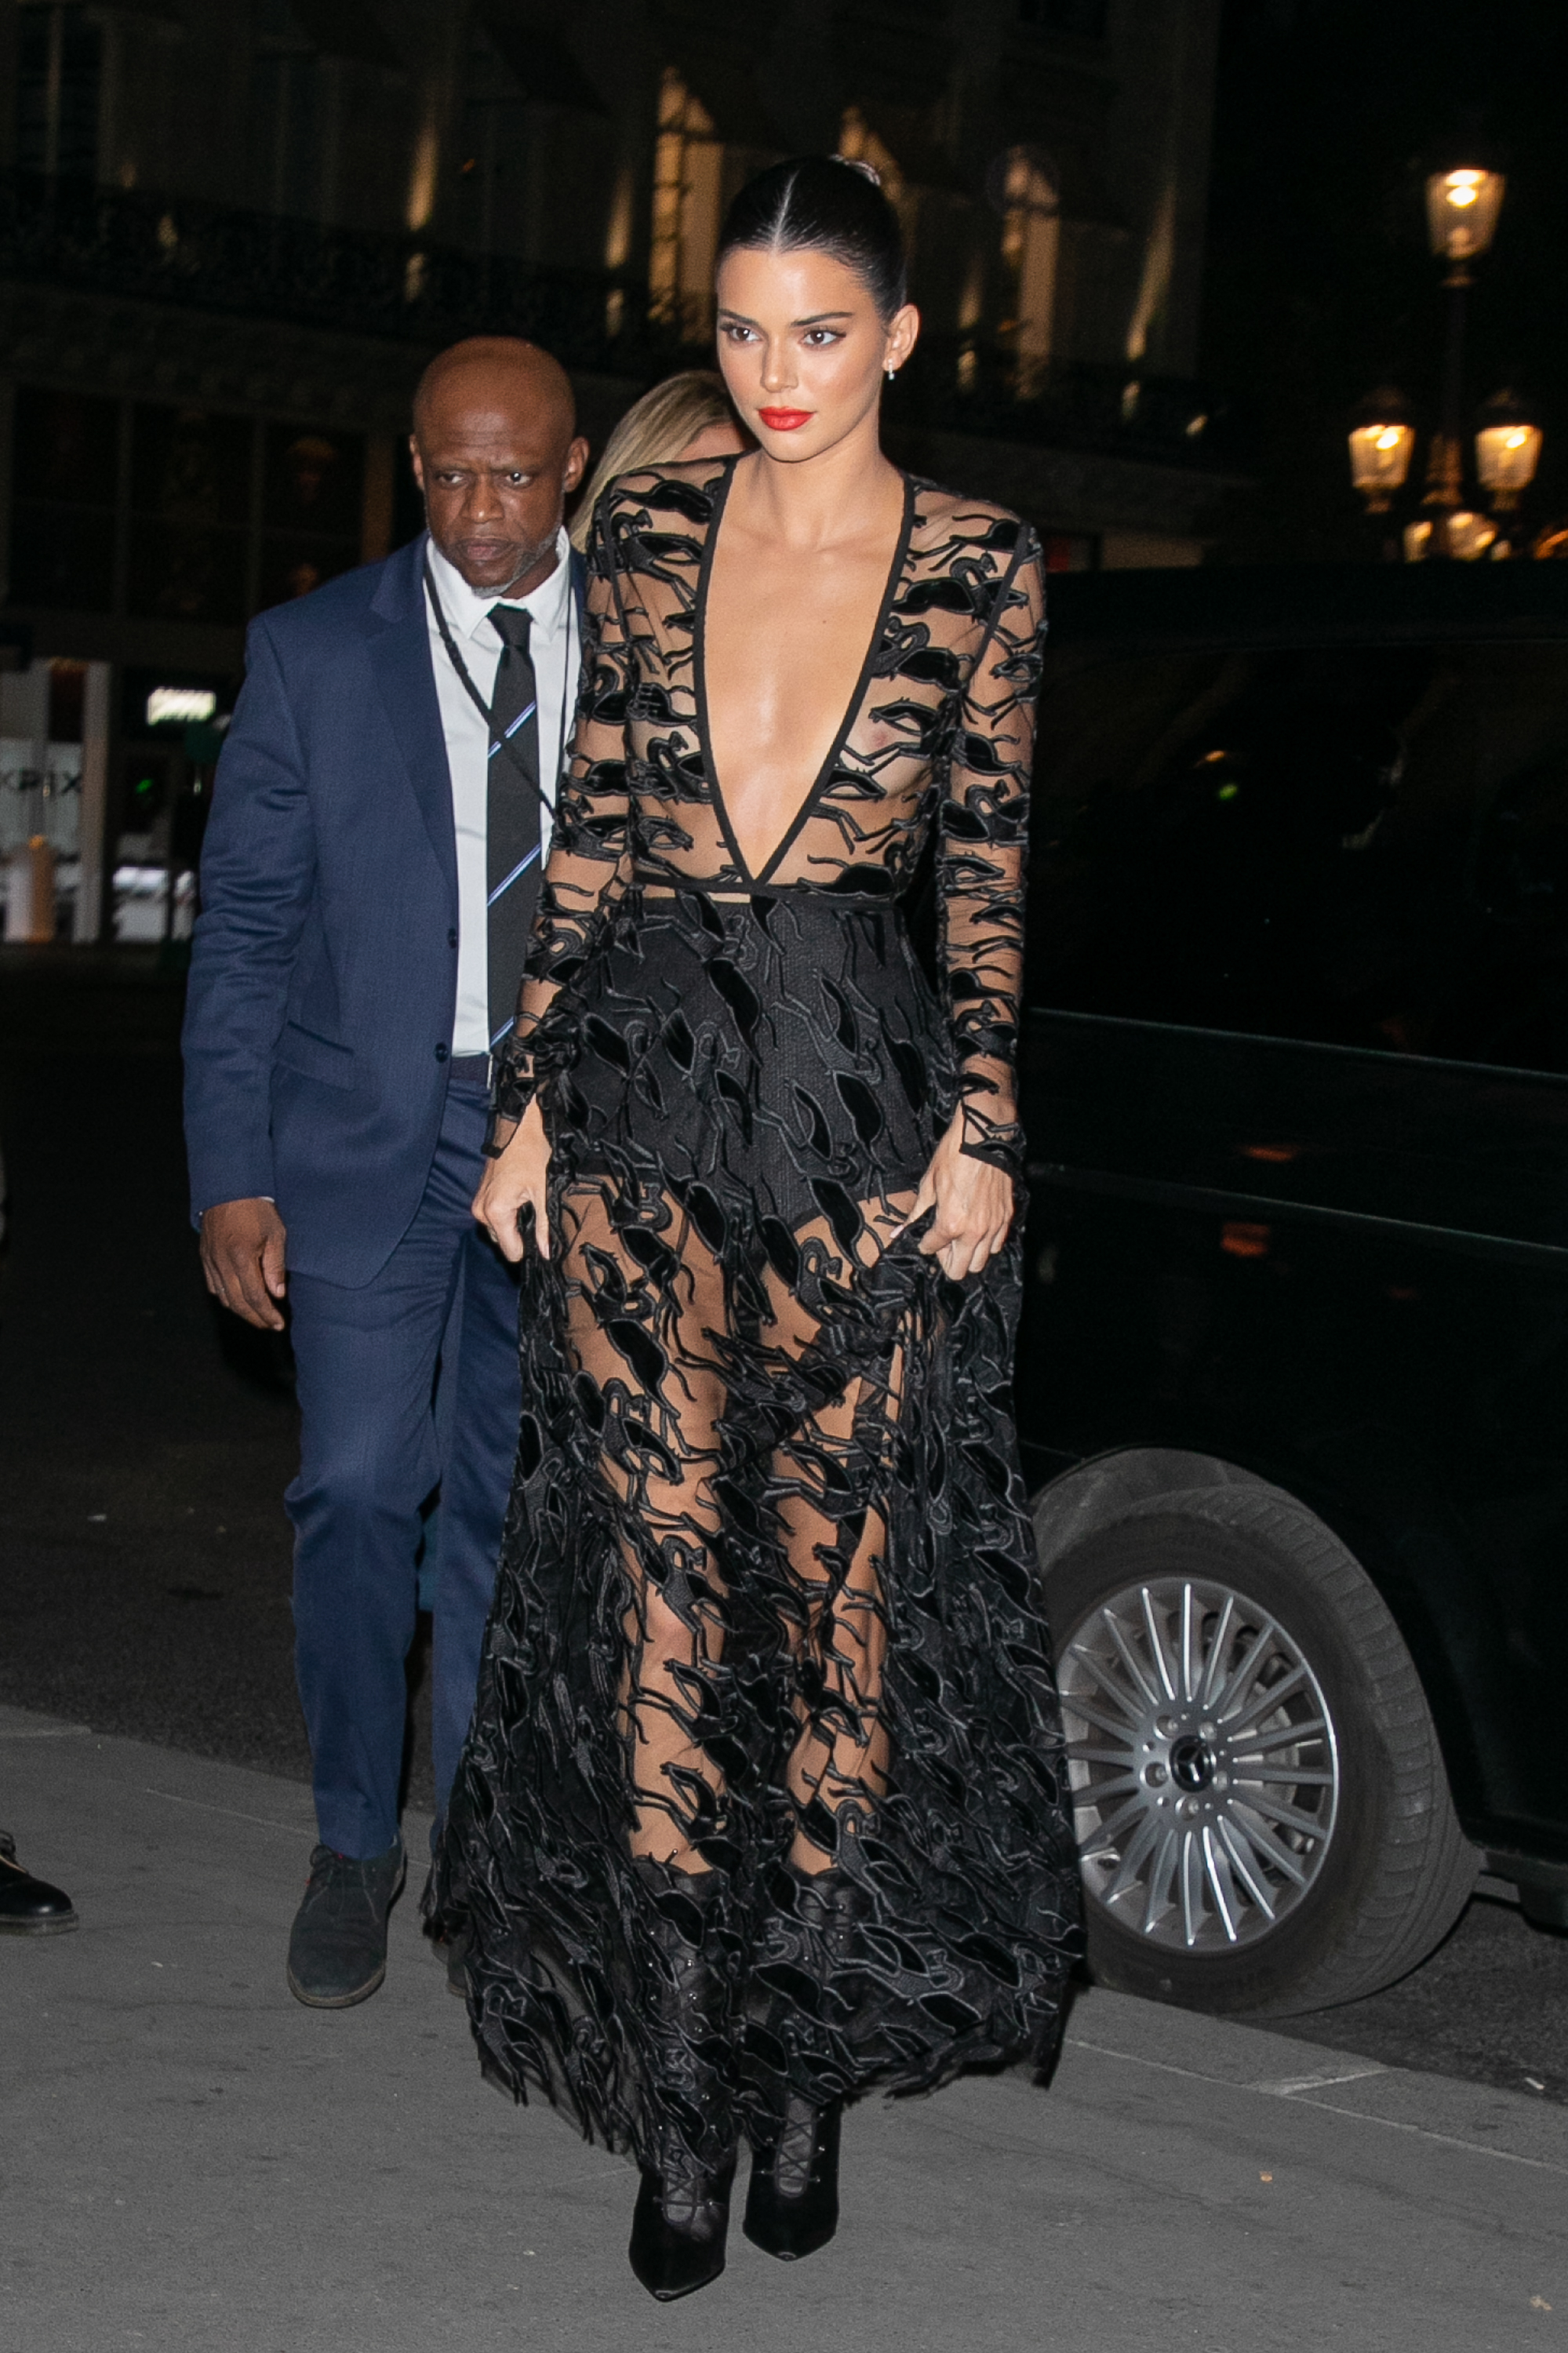 """<p><a href=""""https://style.nine.com.au/2018/09/12/11/10/russell-james-angels-victorias-secret"""" target=""""_blank"""" title=""""Kendall Jenner"""" draggable=""""false"""">Kendall Jenner</a> knows a thing or two about <a href=""""https://style.nine.com.au/2018/09/12/11/10/russell-james-angels-victorias-secret"""" target=""""_blank"""" title=""""standing out from the crowd"""" draggable=""""false"""">standing out from the crowd</a>, and stepping out for a Longchamp event at Opera Garnier in Paris overnight, the model didn't disappoint.</p> <p>The <em>Keeping up with the Kardashians</em> star turned heads at the Luxury label's 70th anniversary partywearing a floor-skimming sheer lace dress, pairing the bold frock with black lace-up boots and a red lip.</p> <p>Jenner is a new brand ambassador for the fashion house, attending theLongchampfashion showduring New York Fashion Week earlier this week.</p> <p>The model-of-the-moment is no stranger to a <a href=""""https://style.nine.com.au/2018/08/01/12/13/style-what-to-wear-kendall-jenner-corset-trackies"""" target=""""_blank"""" title=""""daring number"""" draggable=""""false"""">daring number</a>. Take a look at all the times the 22 year-old has commanded attention and embraced the sheer-and-braless look.</p>"""